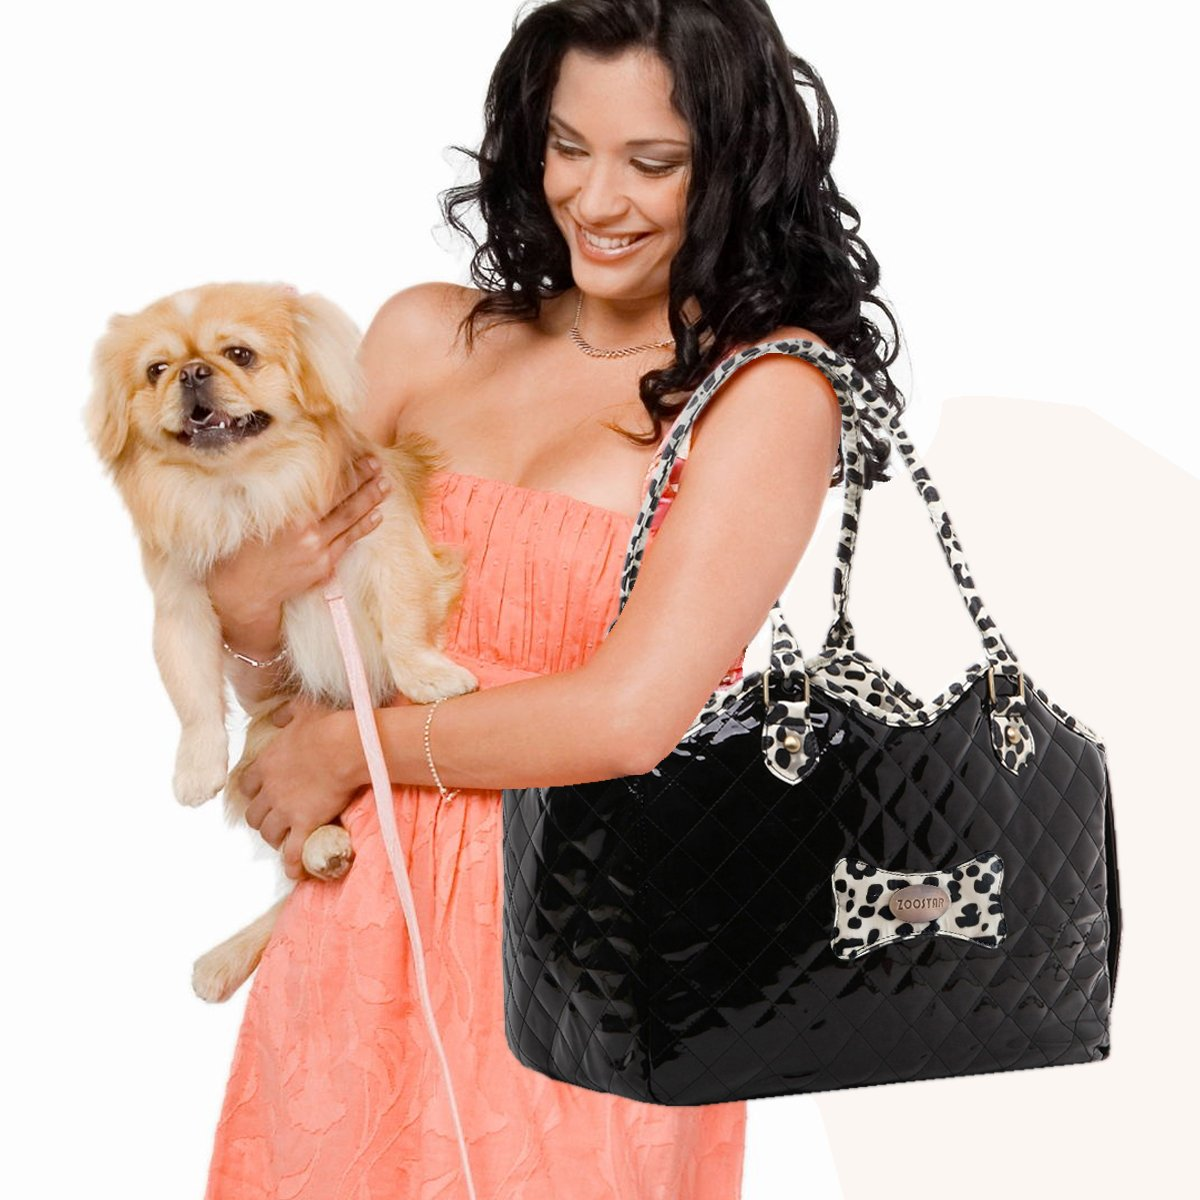 Dog Carrier Purse Pet Travel Bag Cat Portable Handbag,Soft Sided Tote with 2 Fleece Pads for Small Pets,Come with a Pet Comb,Up to 15lbs,Easy to Storage,Go Hiking Shopping with Your Doggy (black) by ZOOSTAR (Image #3)